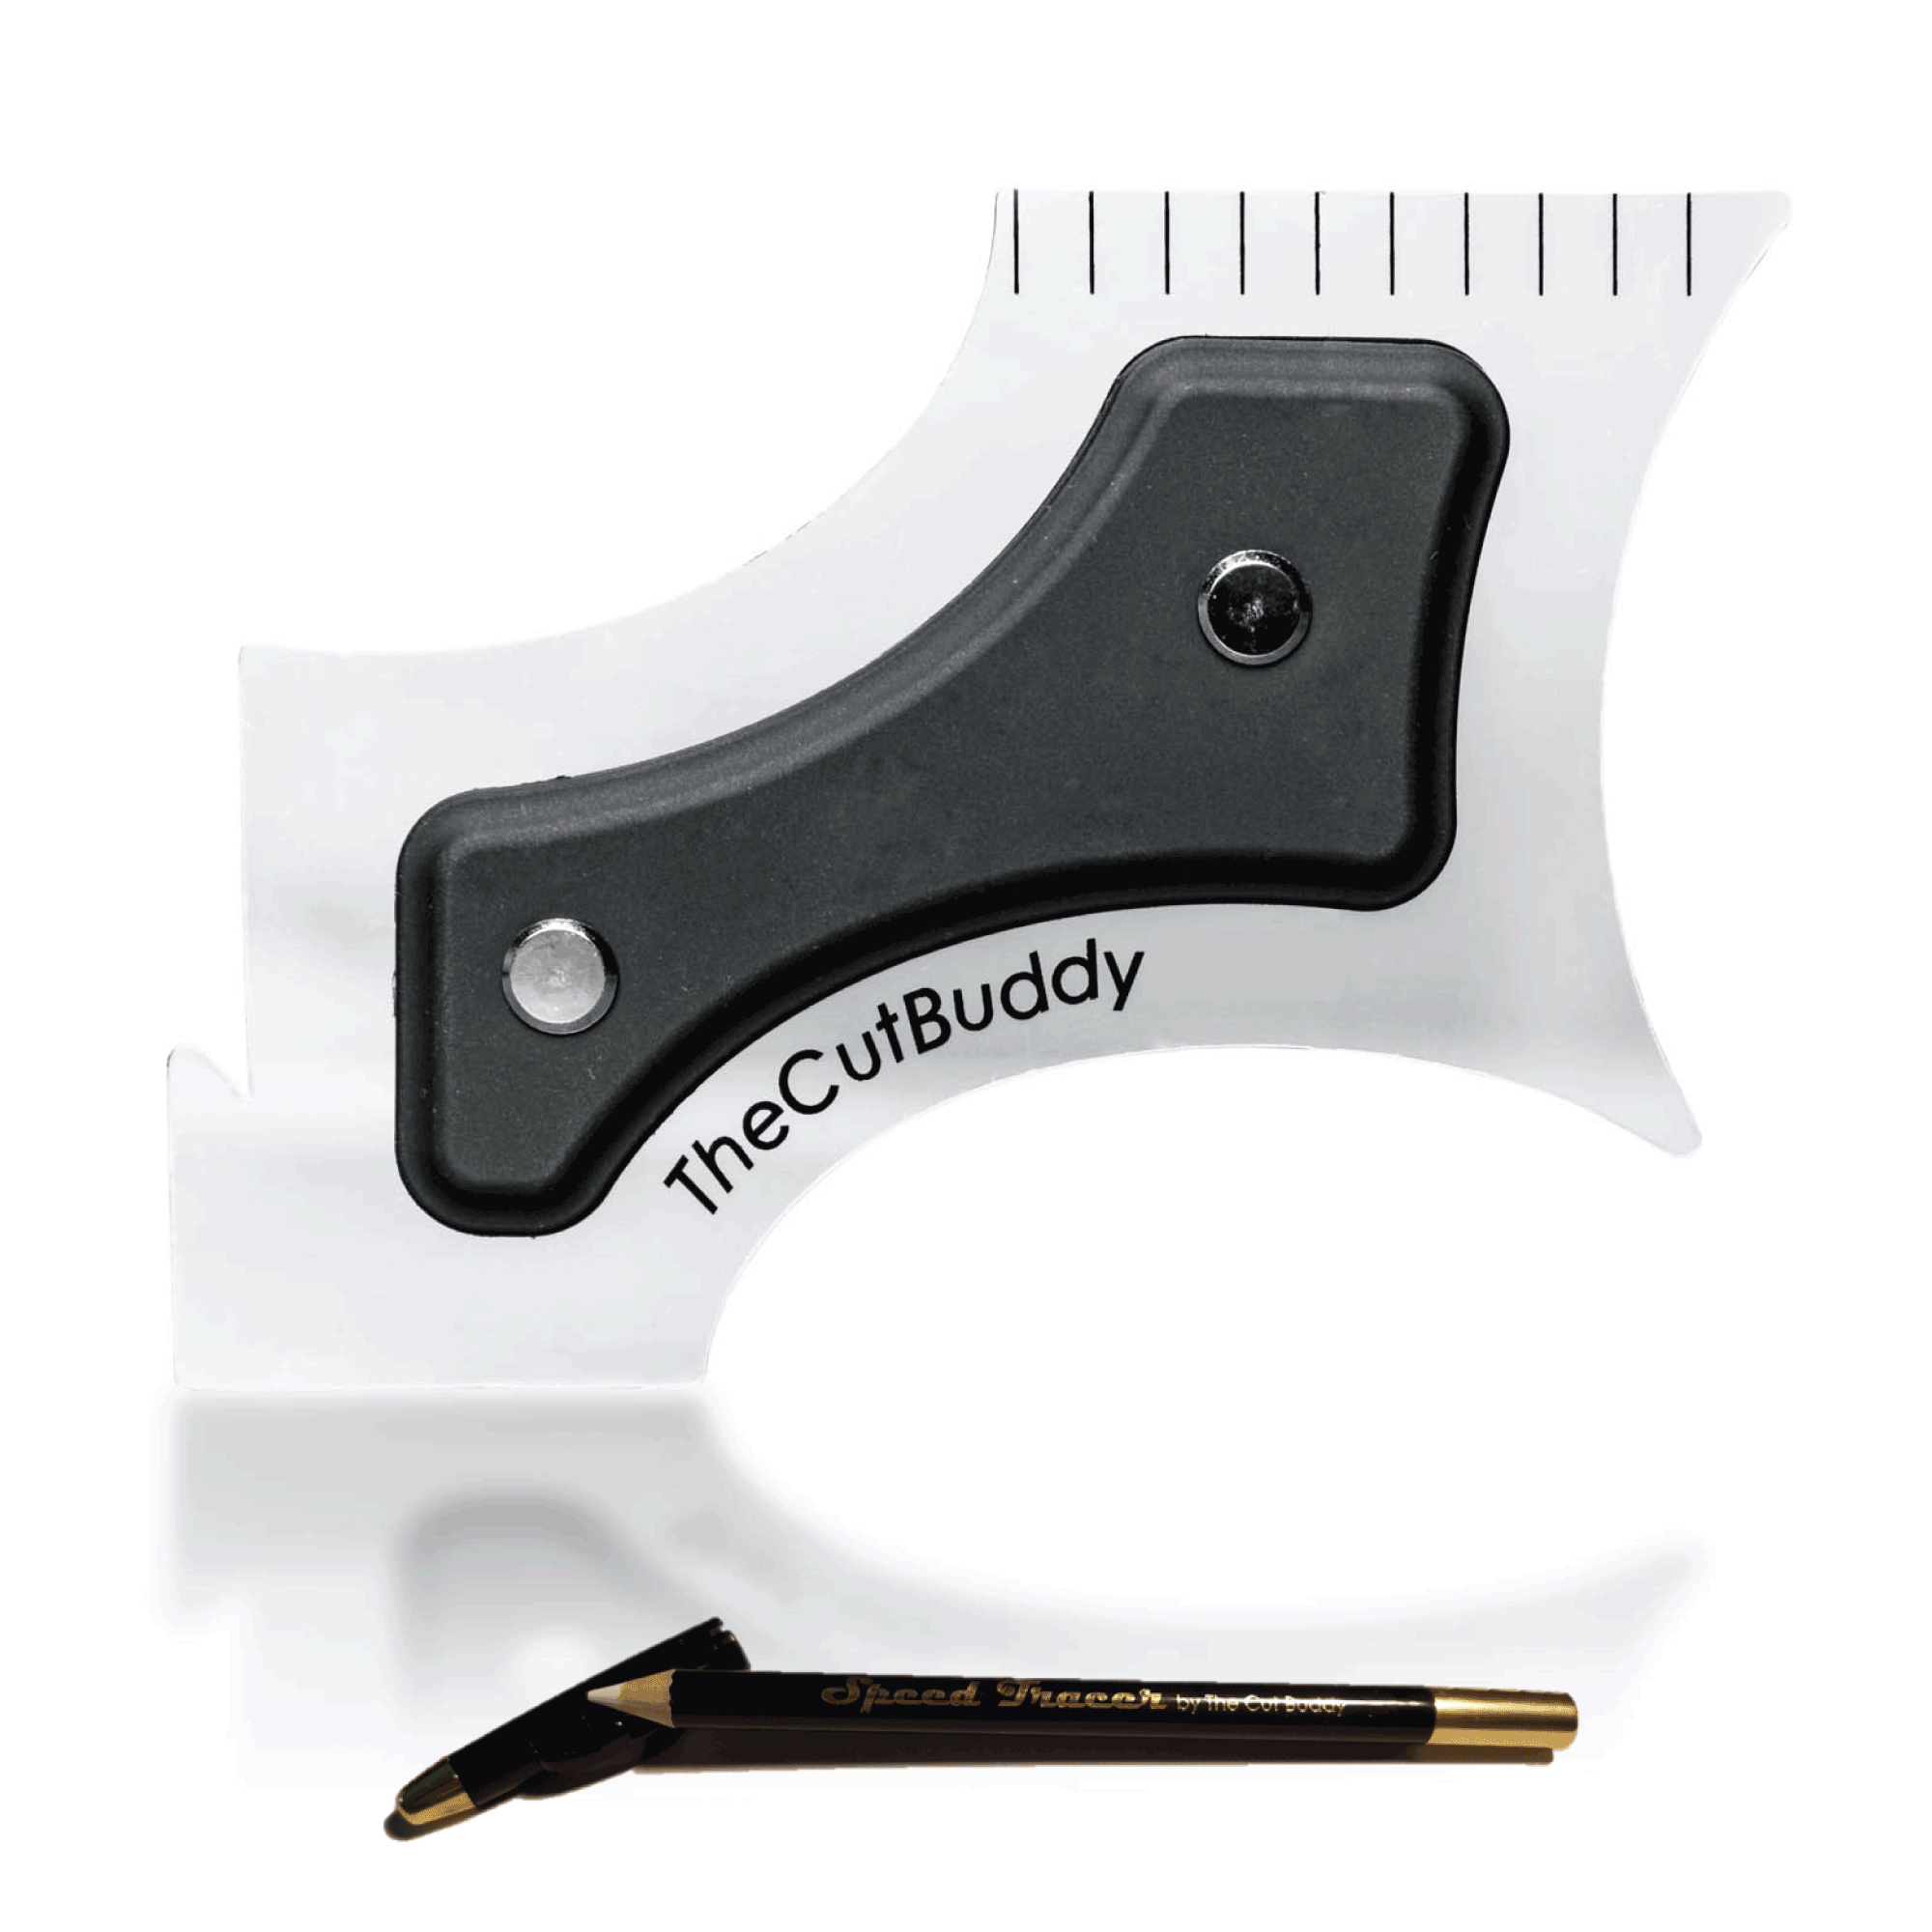 The Cut Buddy - Multiple Curve Beard Shaping Tool and Haircut Guide Template